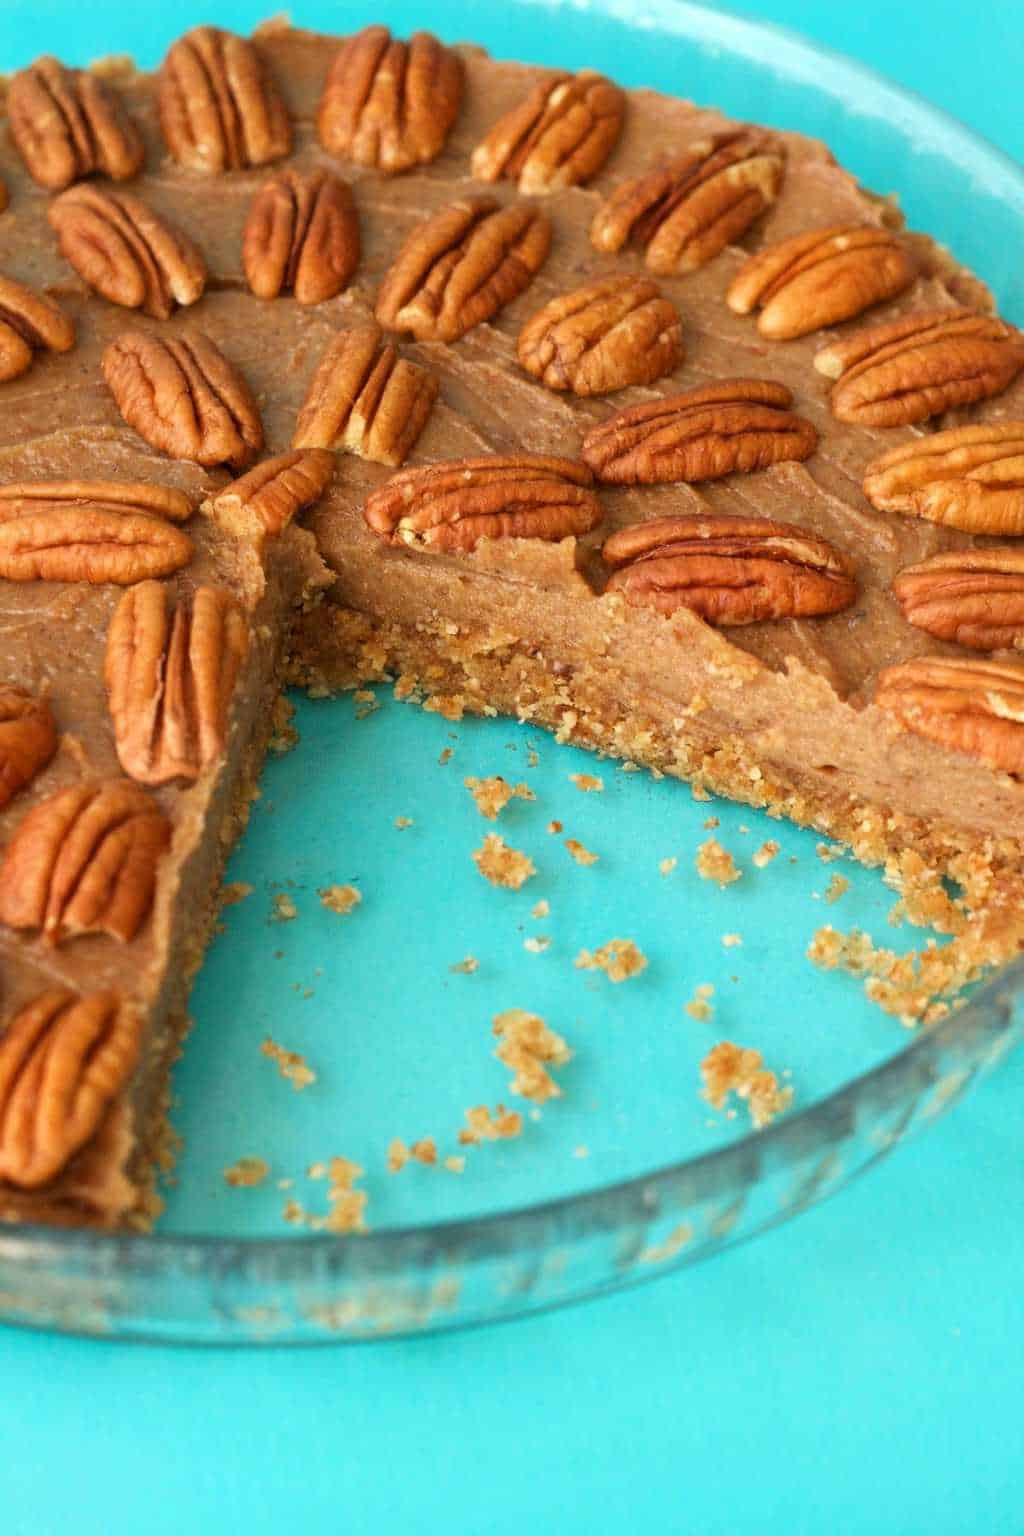 Deliciously raw vegan pecan pie. 3-layers of raw goodness, packed with pecans and pecan flavor, utterly divine served with vegan whipped cream! #vegan #lovingitvegan #raw #glutenfree #dessert